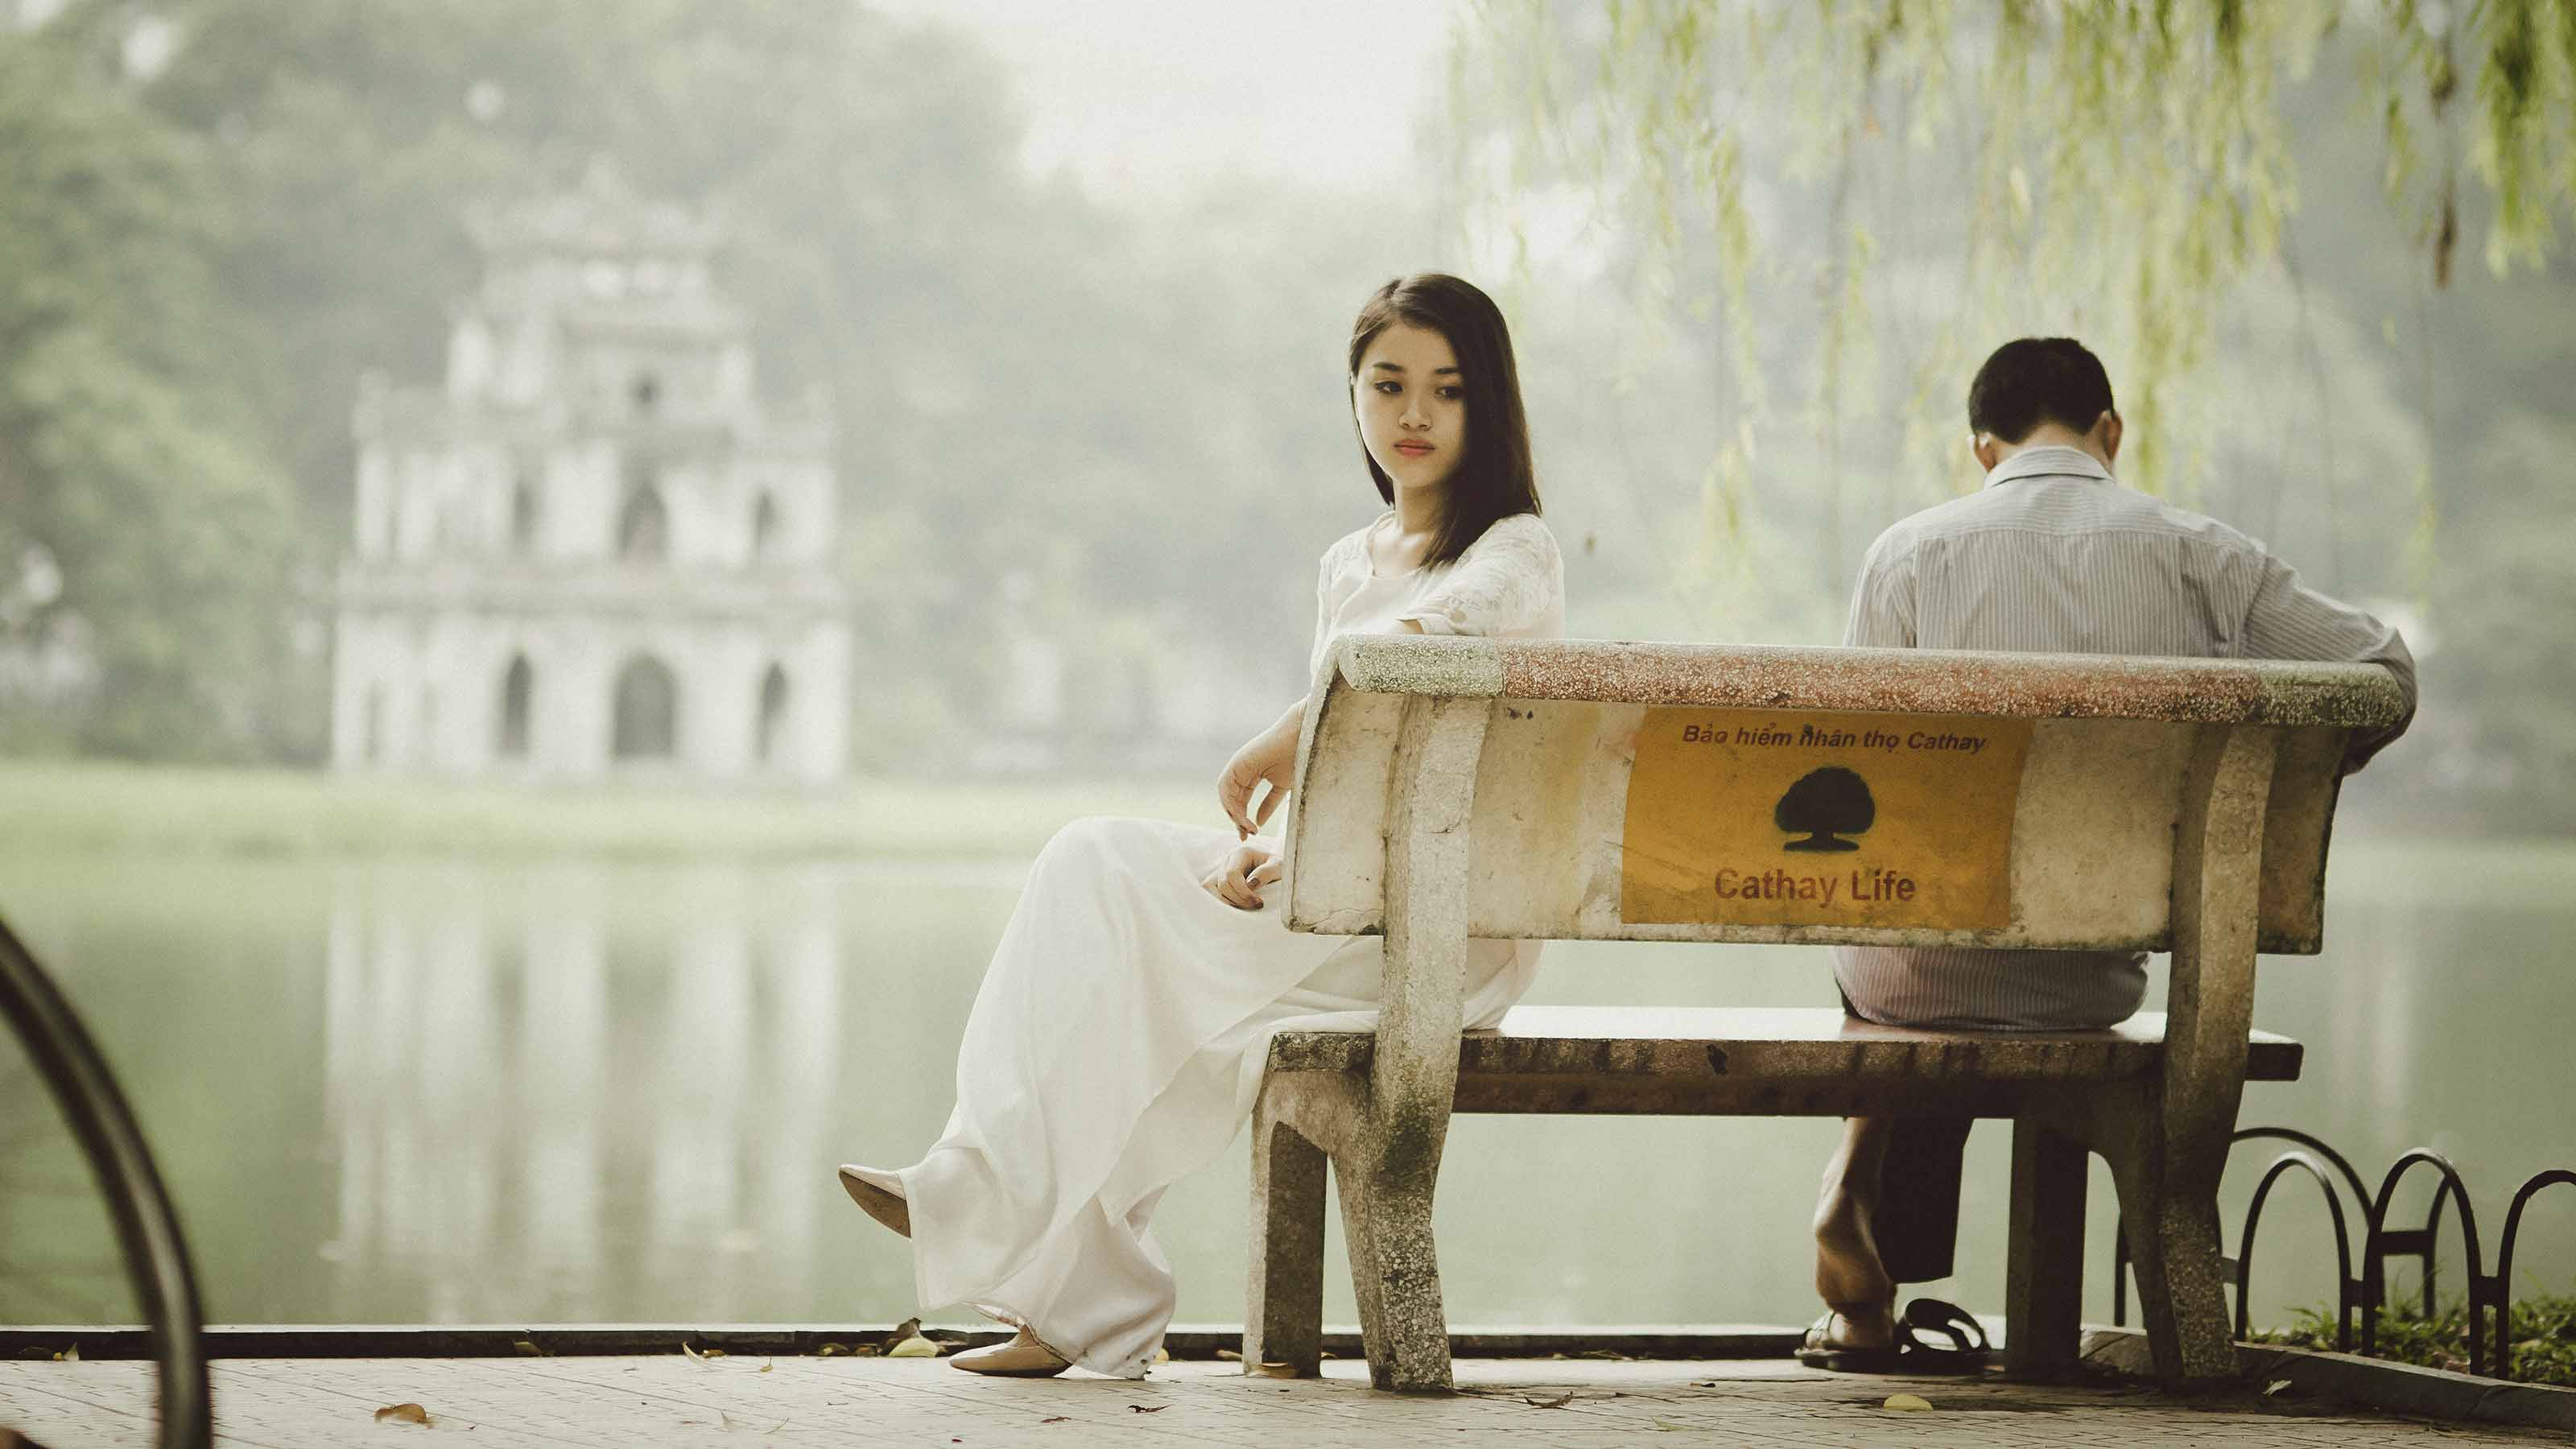 Silent Couple on Bench